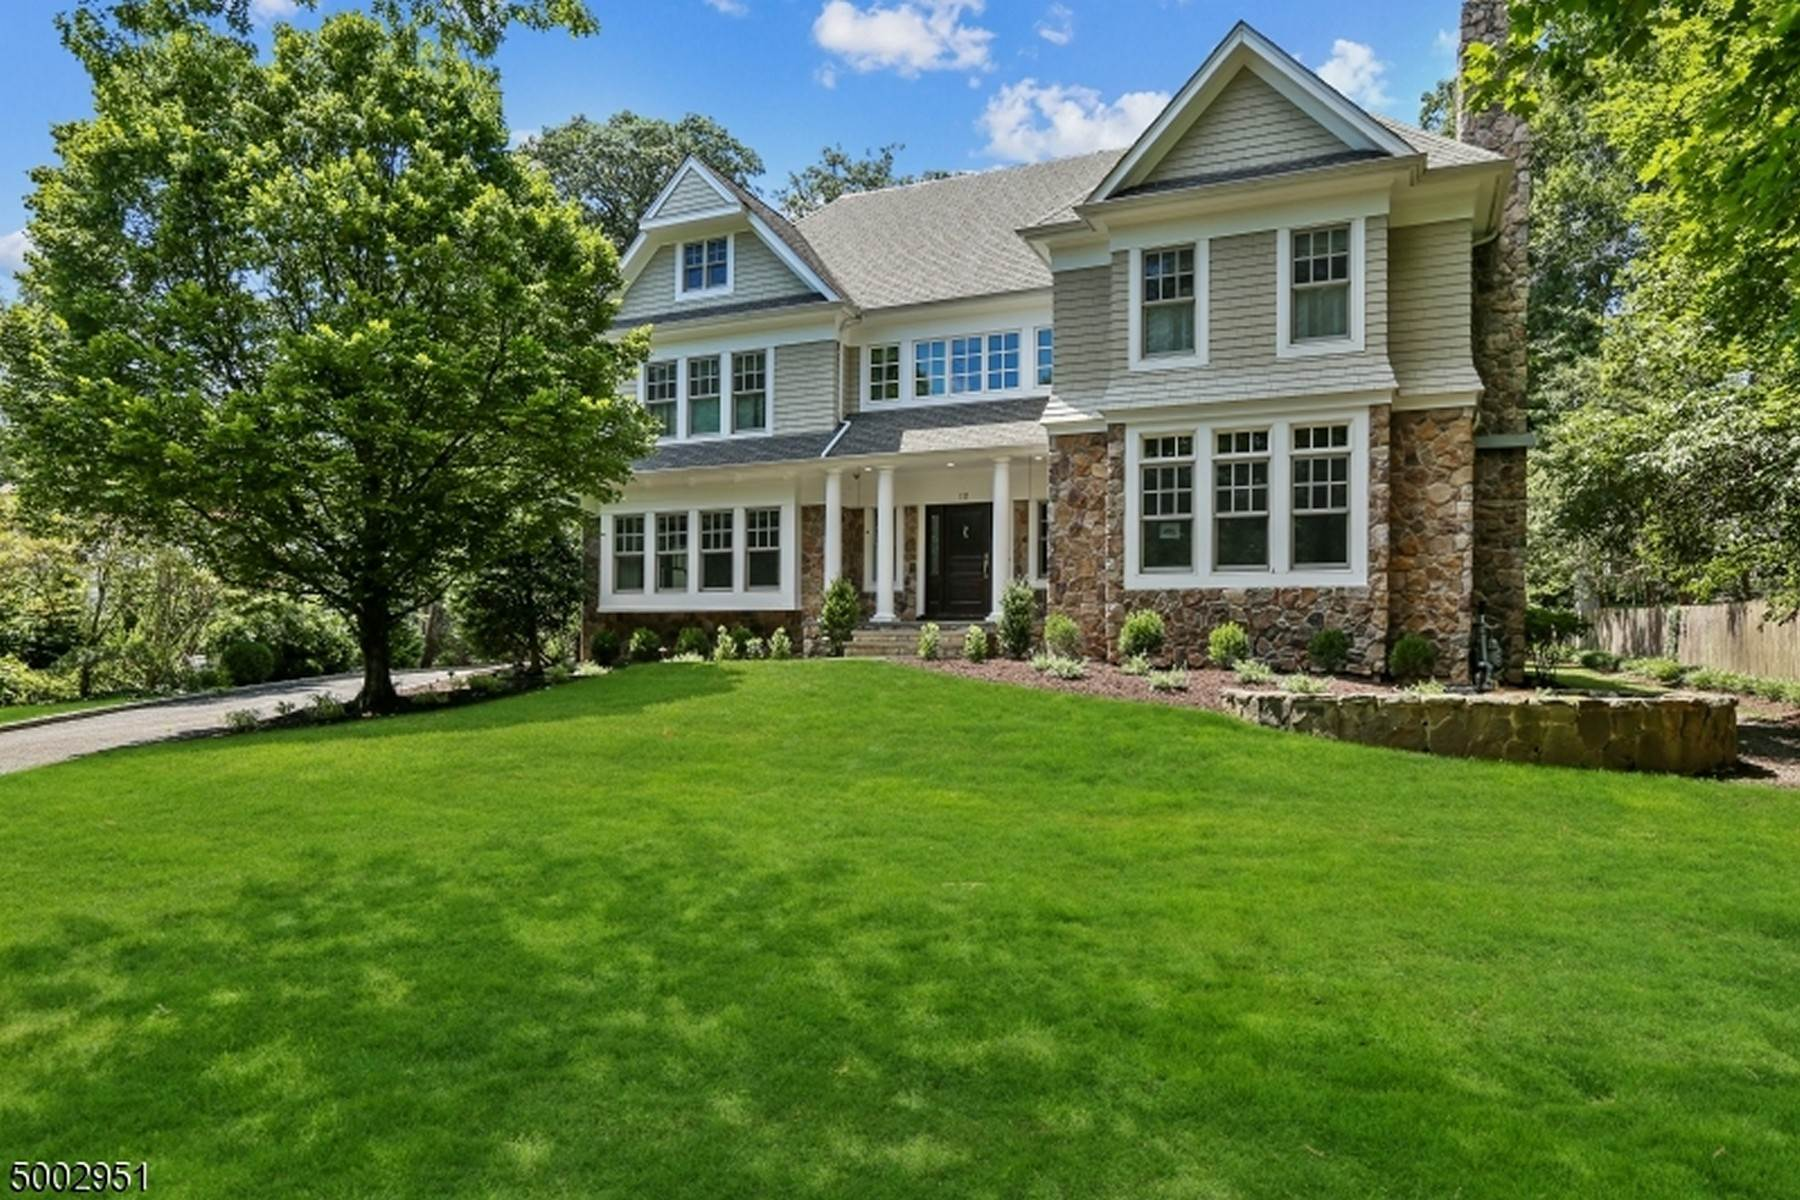 Single Family Homes for Sale at Northside Colonial Close To Downtown 111 Whittredge Road Summit, New Jersey 07901 United States